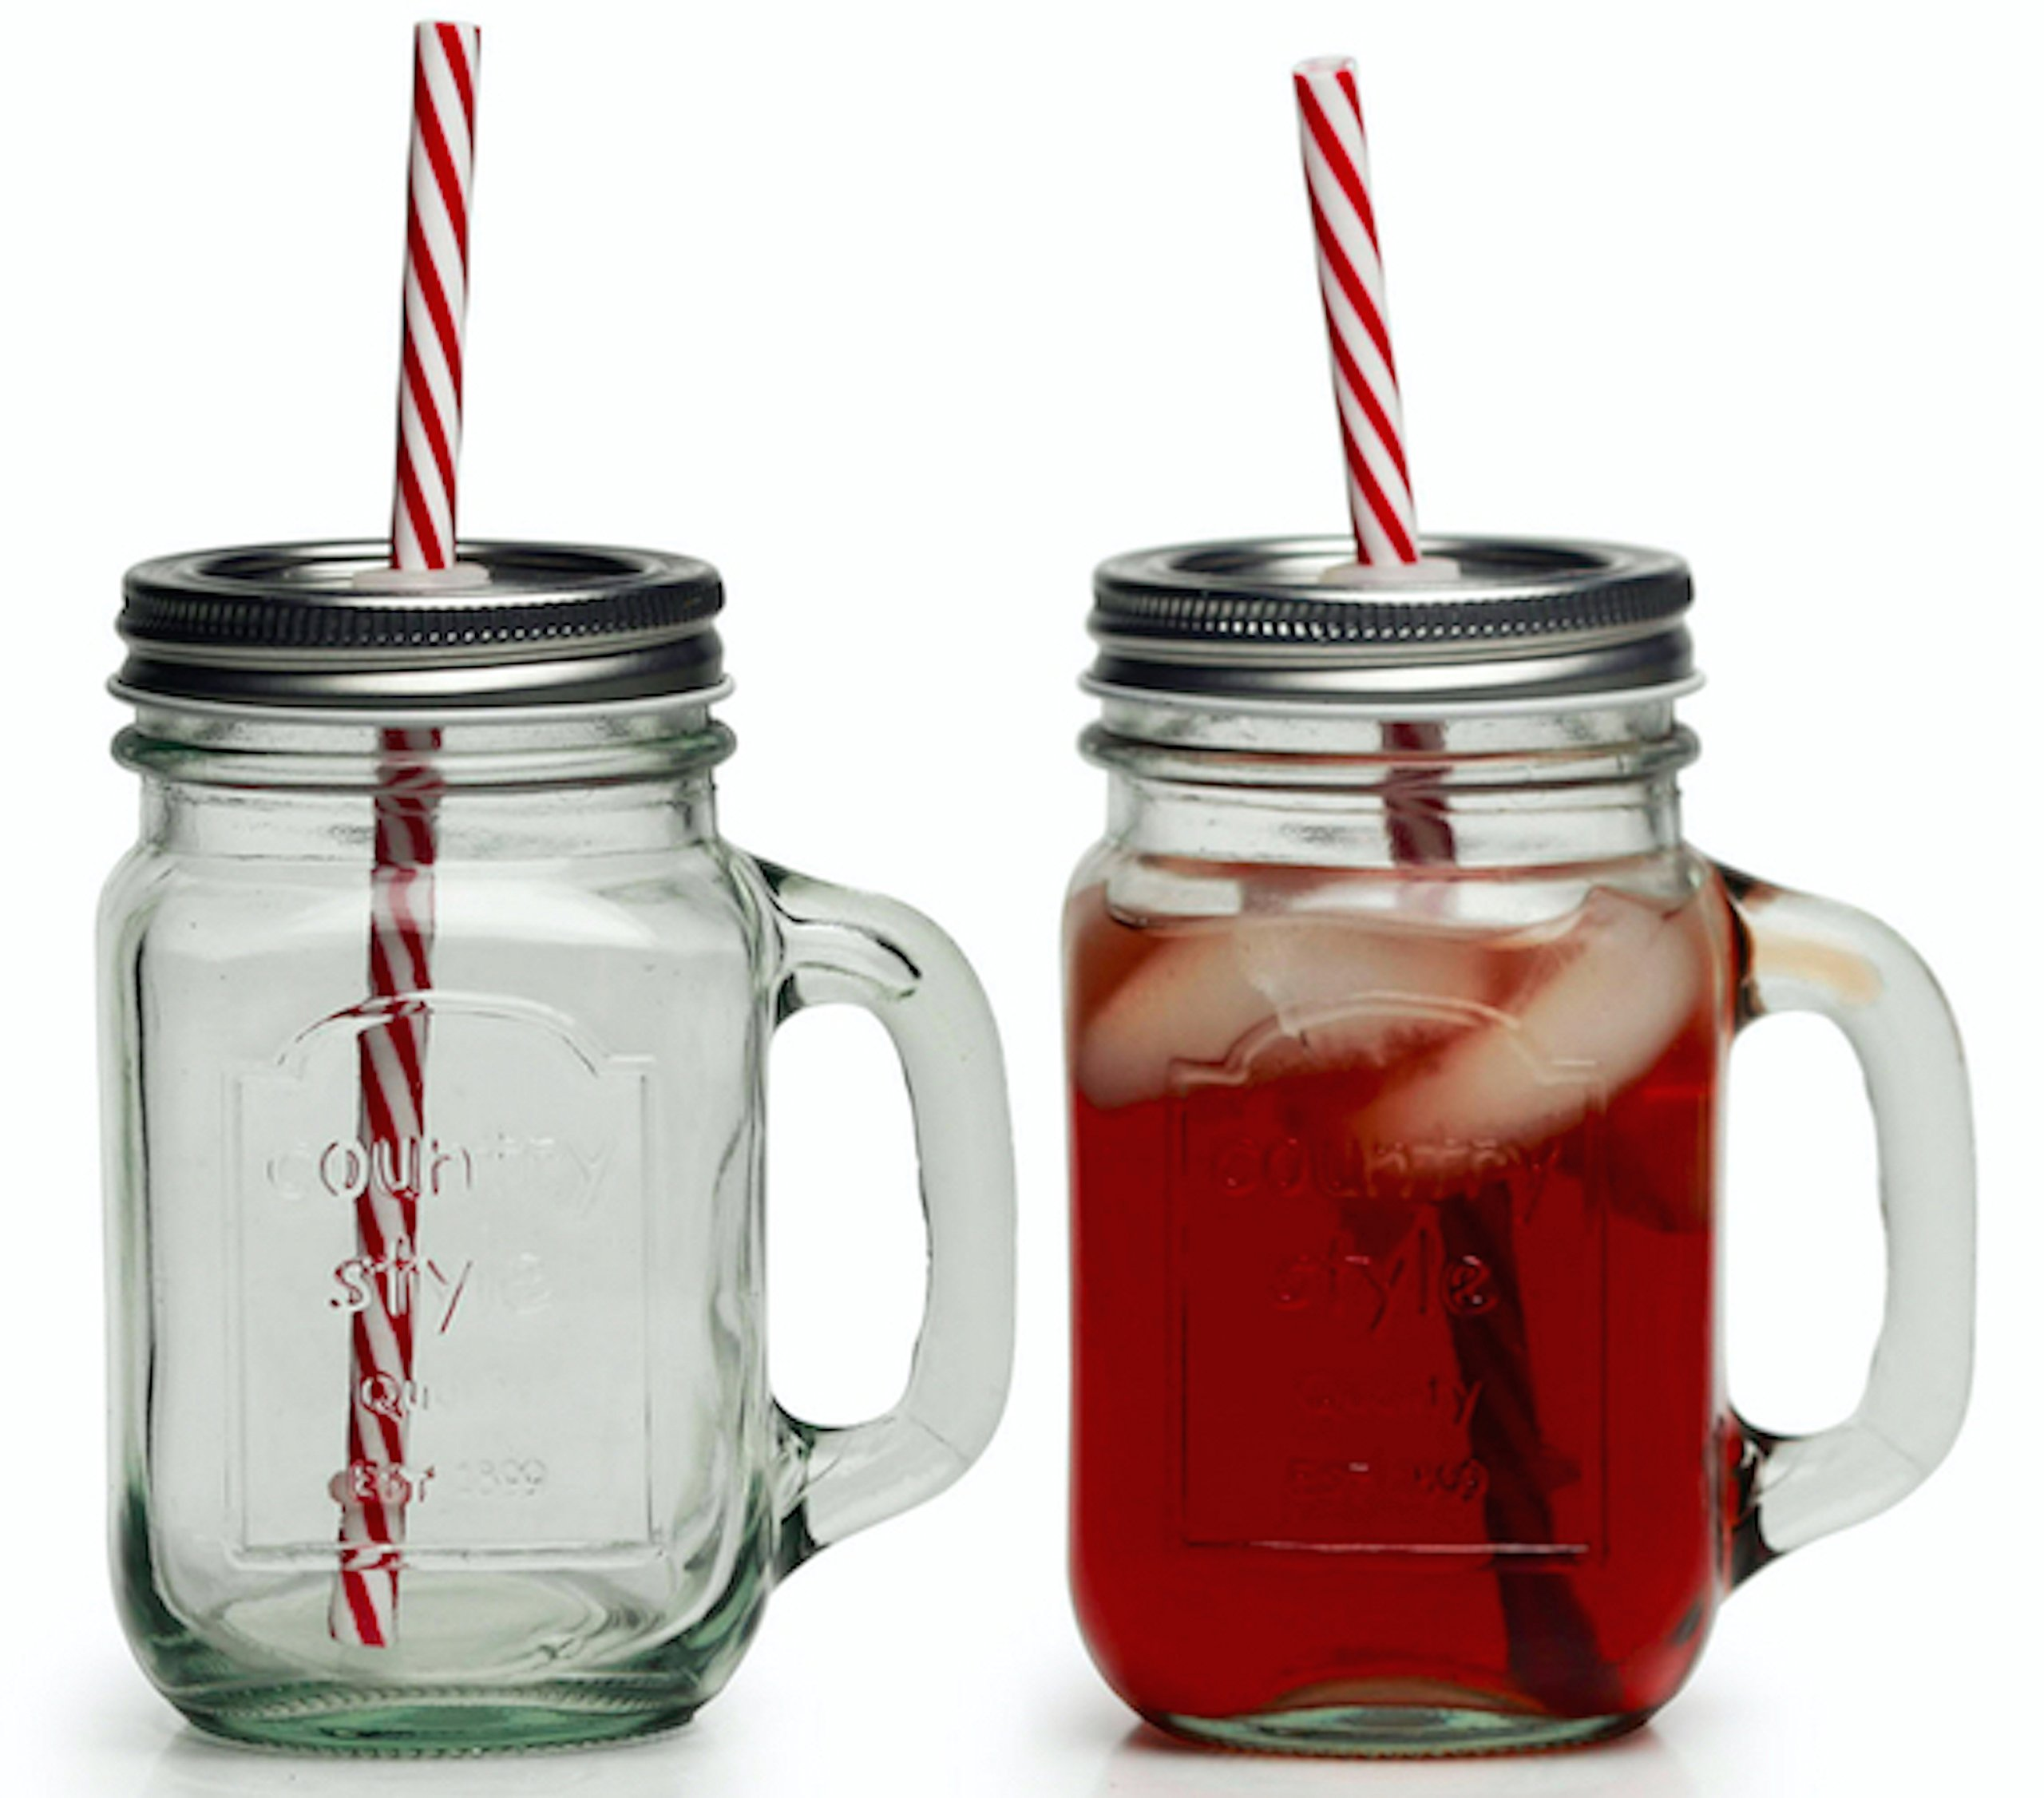 Circleware Country Glass Yorkshire Mason Jar Drinking Mugs with Handles, Metal Lids and Hard Plastic Reusable Straws, Set of 4, 15 ounce, Clear, Limited Edition Glassware